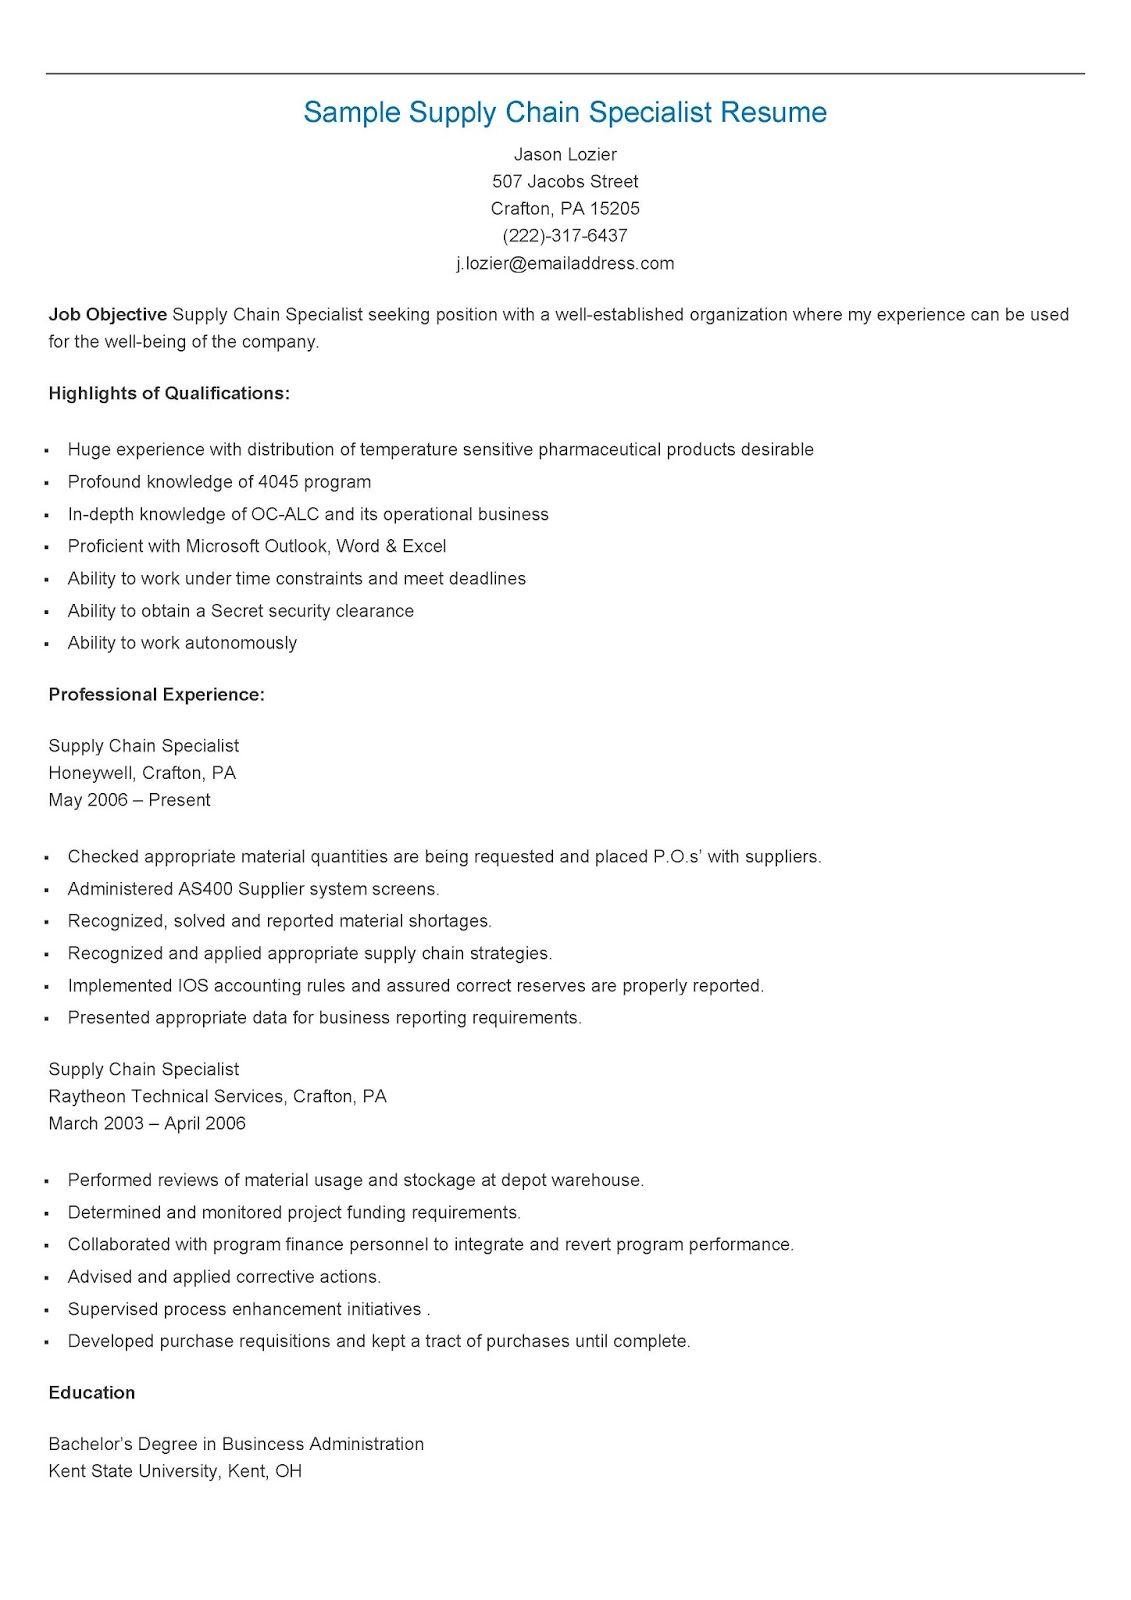 Sample Supply Chain Specialist Resume  Resame